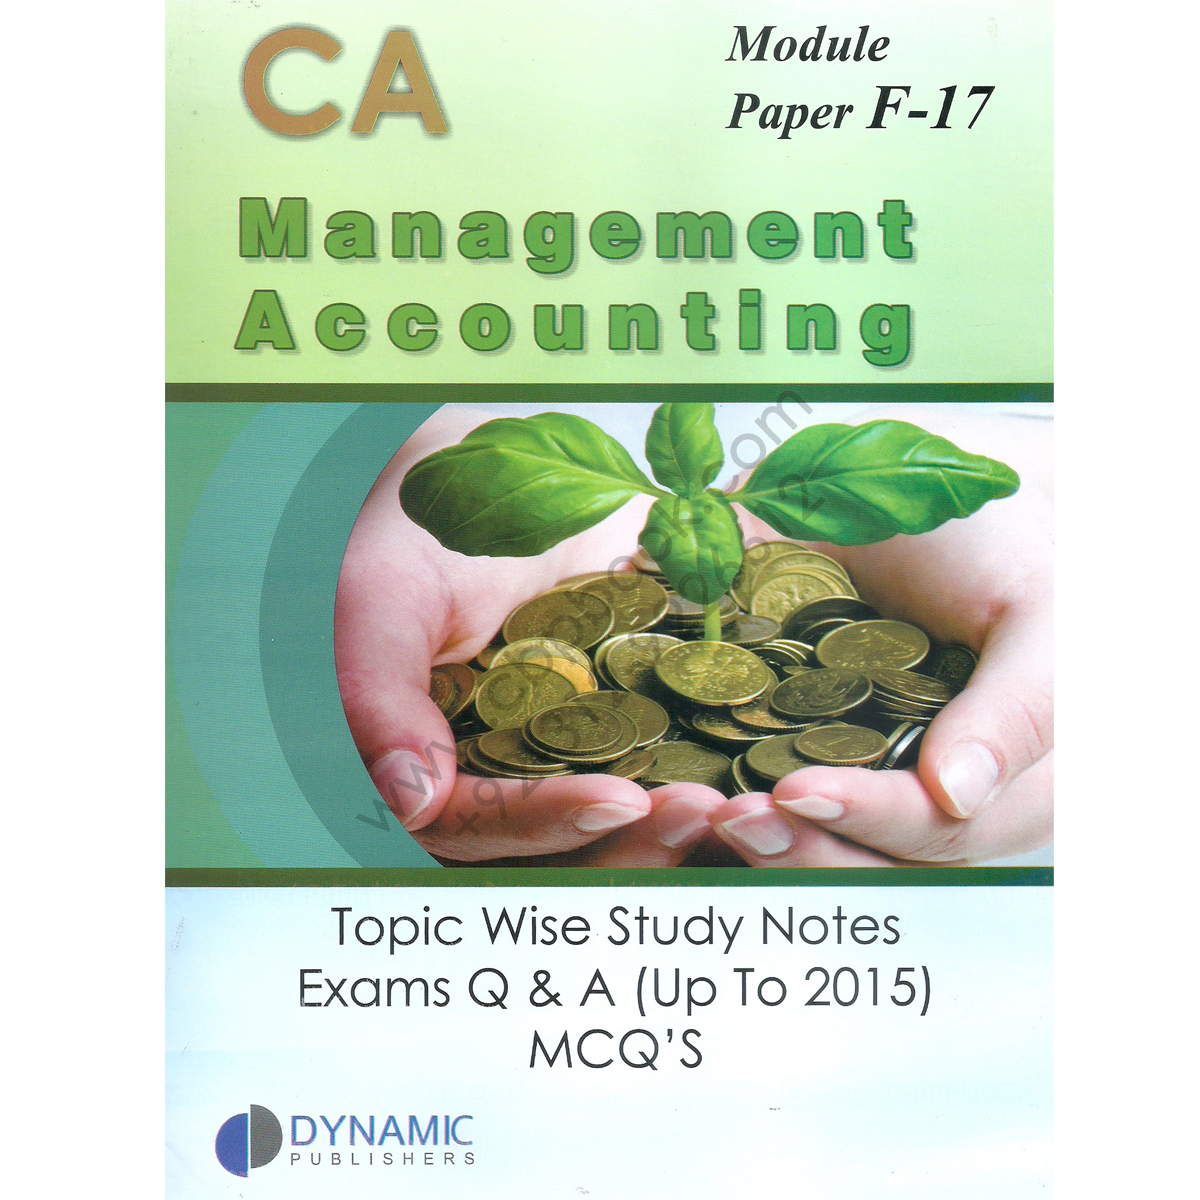 ca module f17 management accounting topic wise study notes exams q a upto 2015 mcqs dynamic